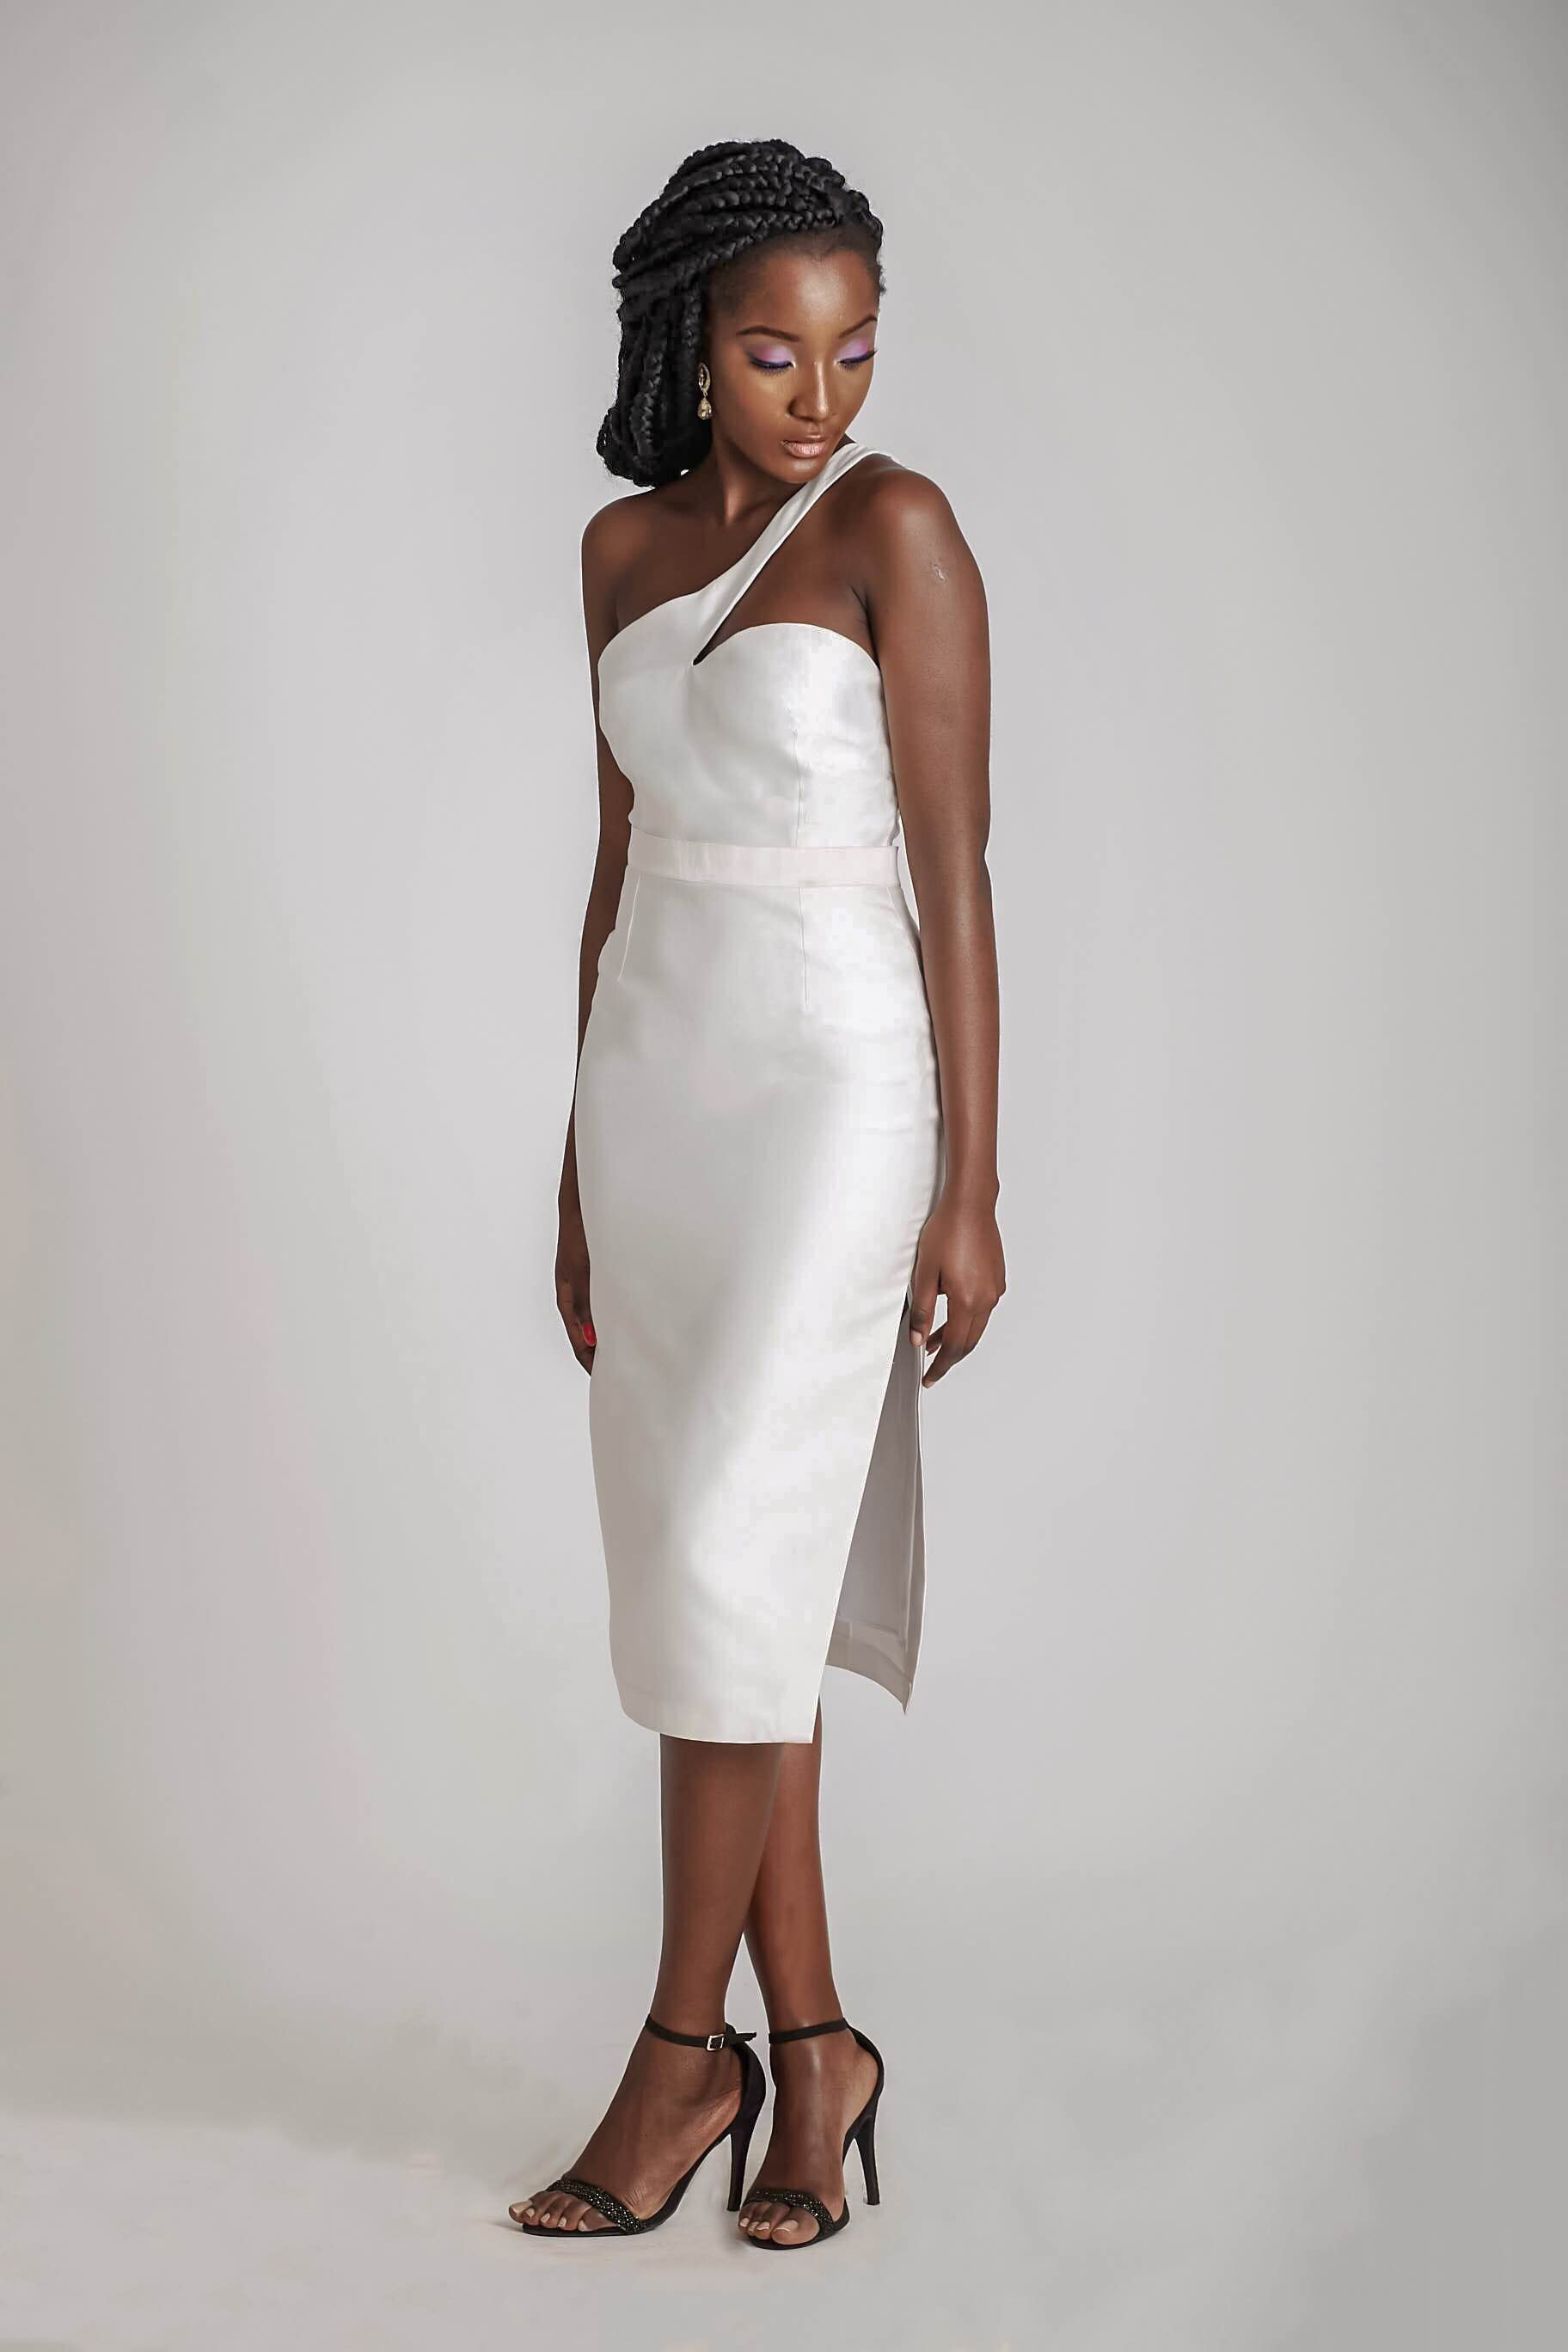 Imad Eduso - BN Style - Collection Lookbook - BellaNaija.com 015